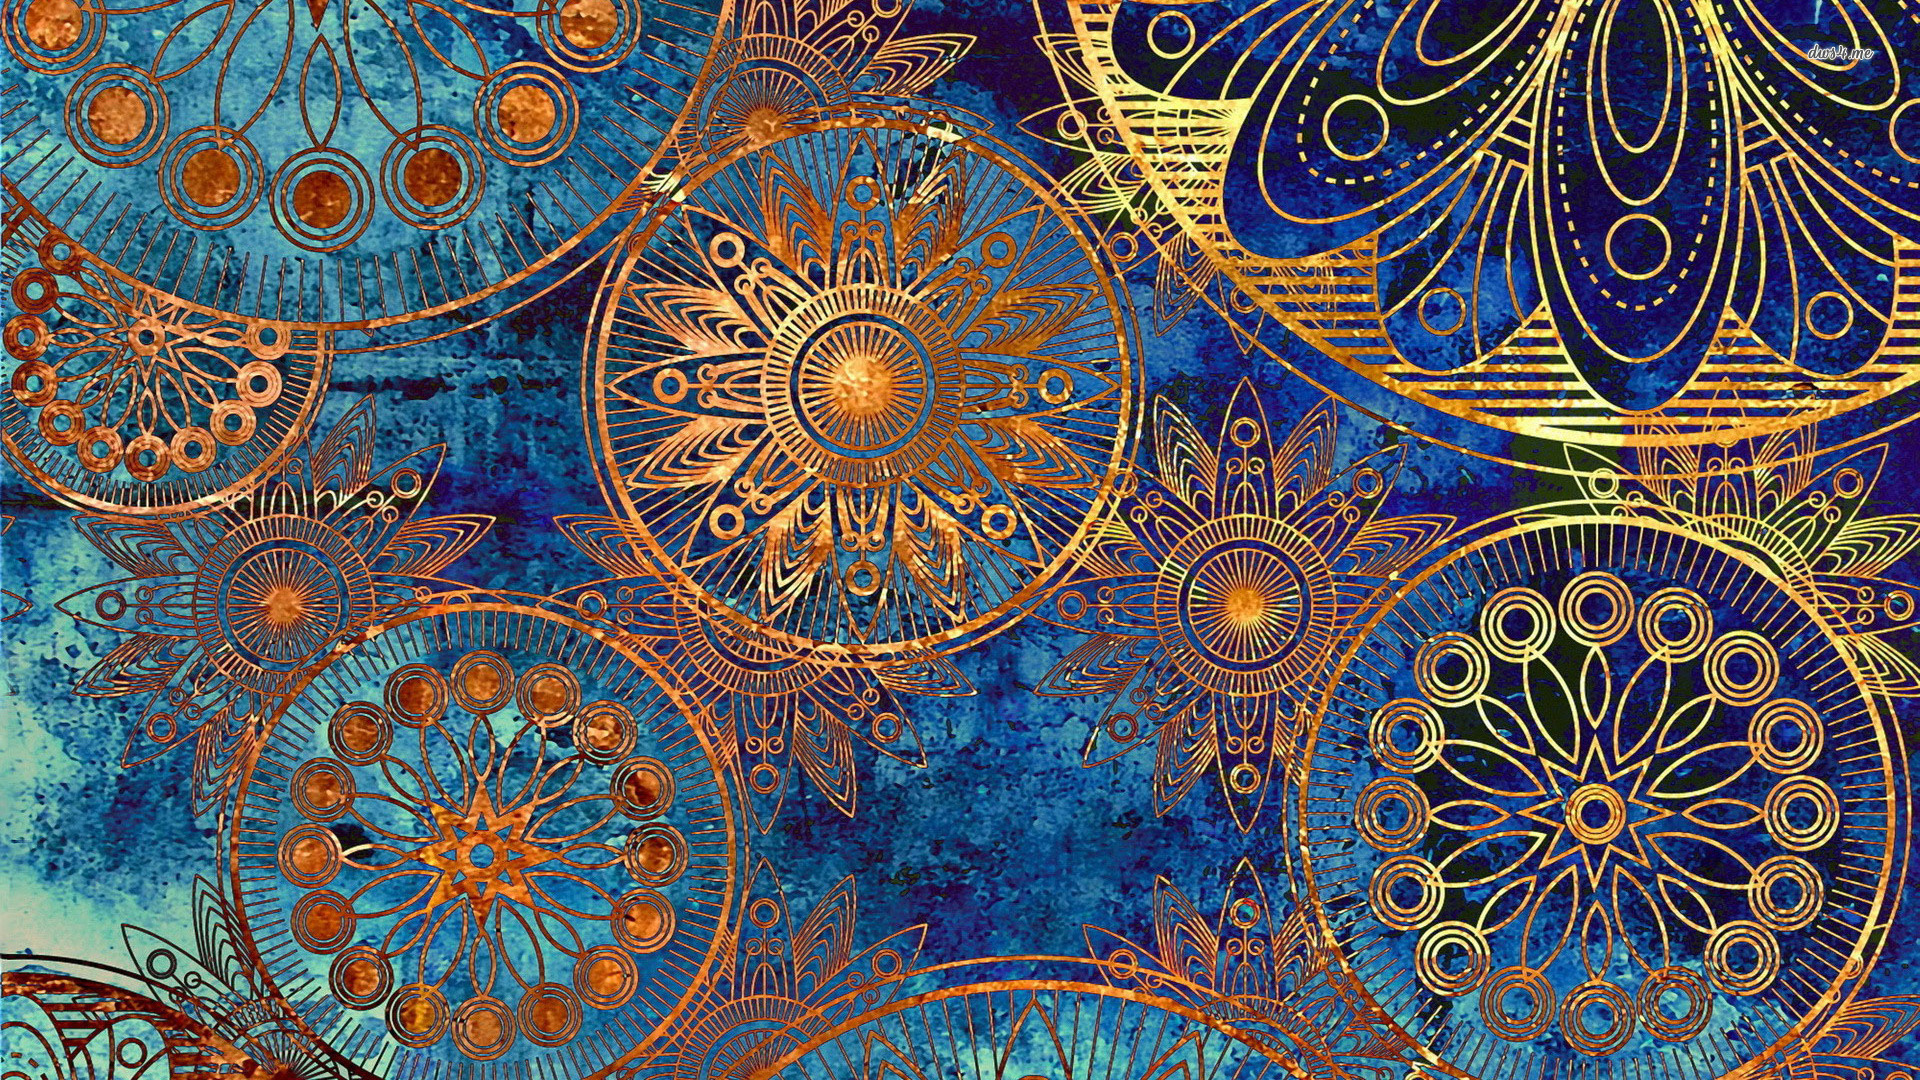 Abstract Flower Pattern Wallpaper Name 13506 floral pattern 1920x1080